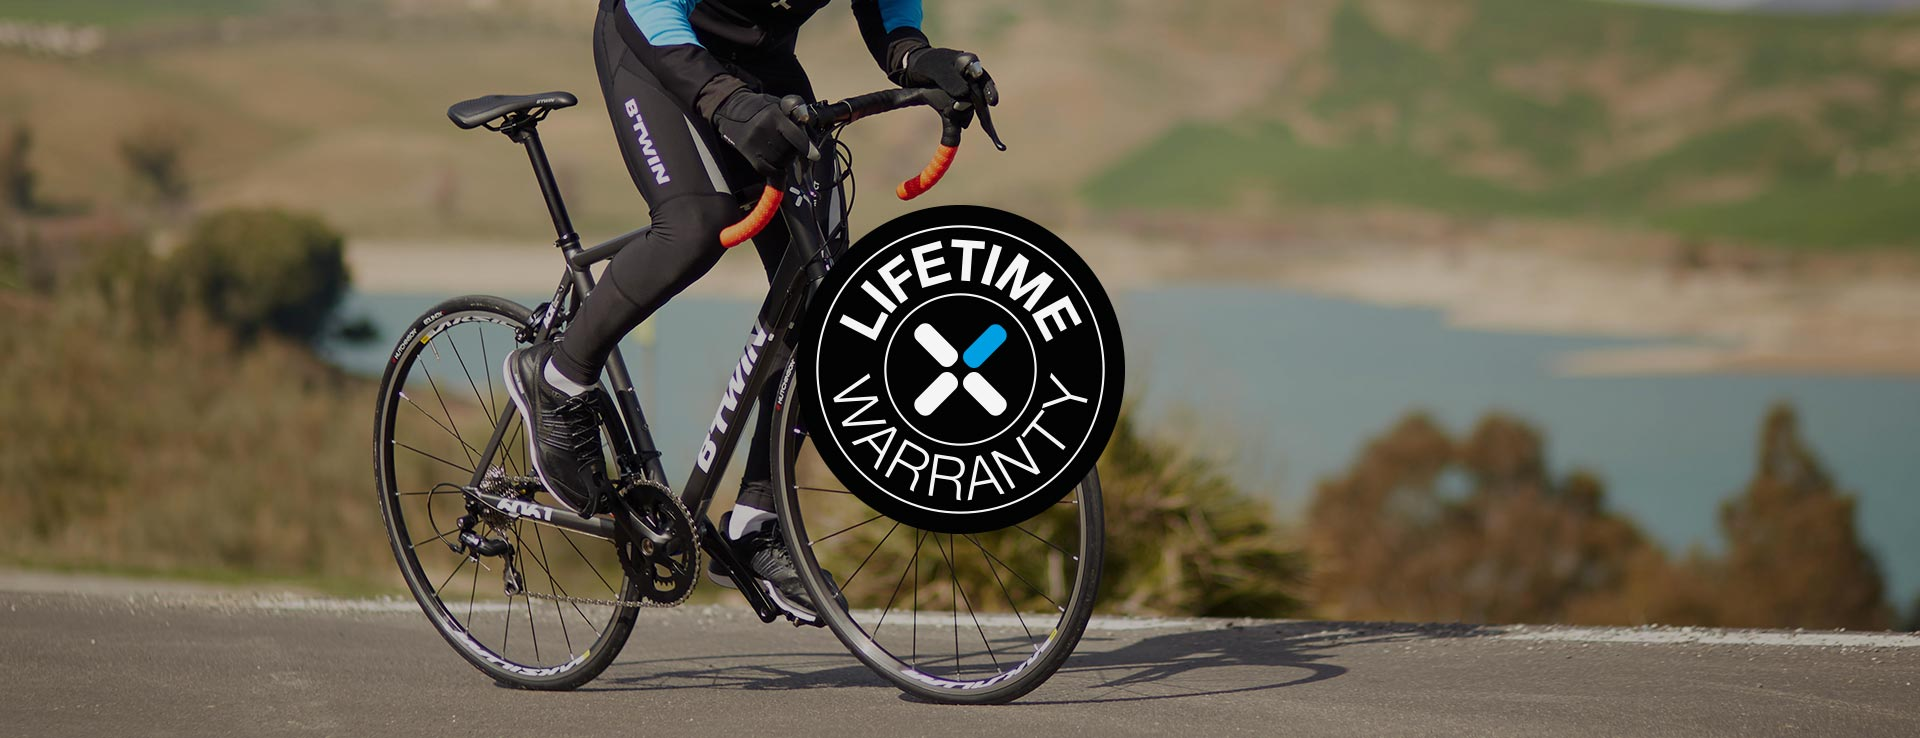 Lifetime Warranty On Decathlon Bikes Sold After 1 June 2013